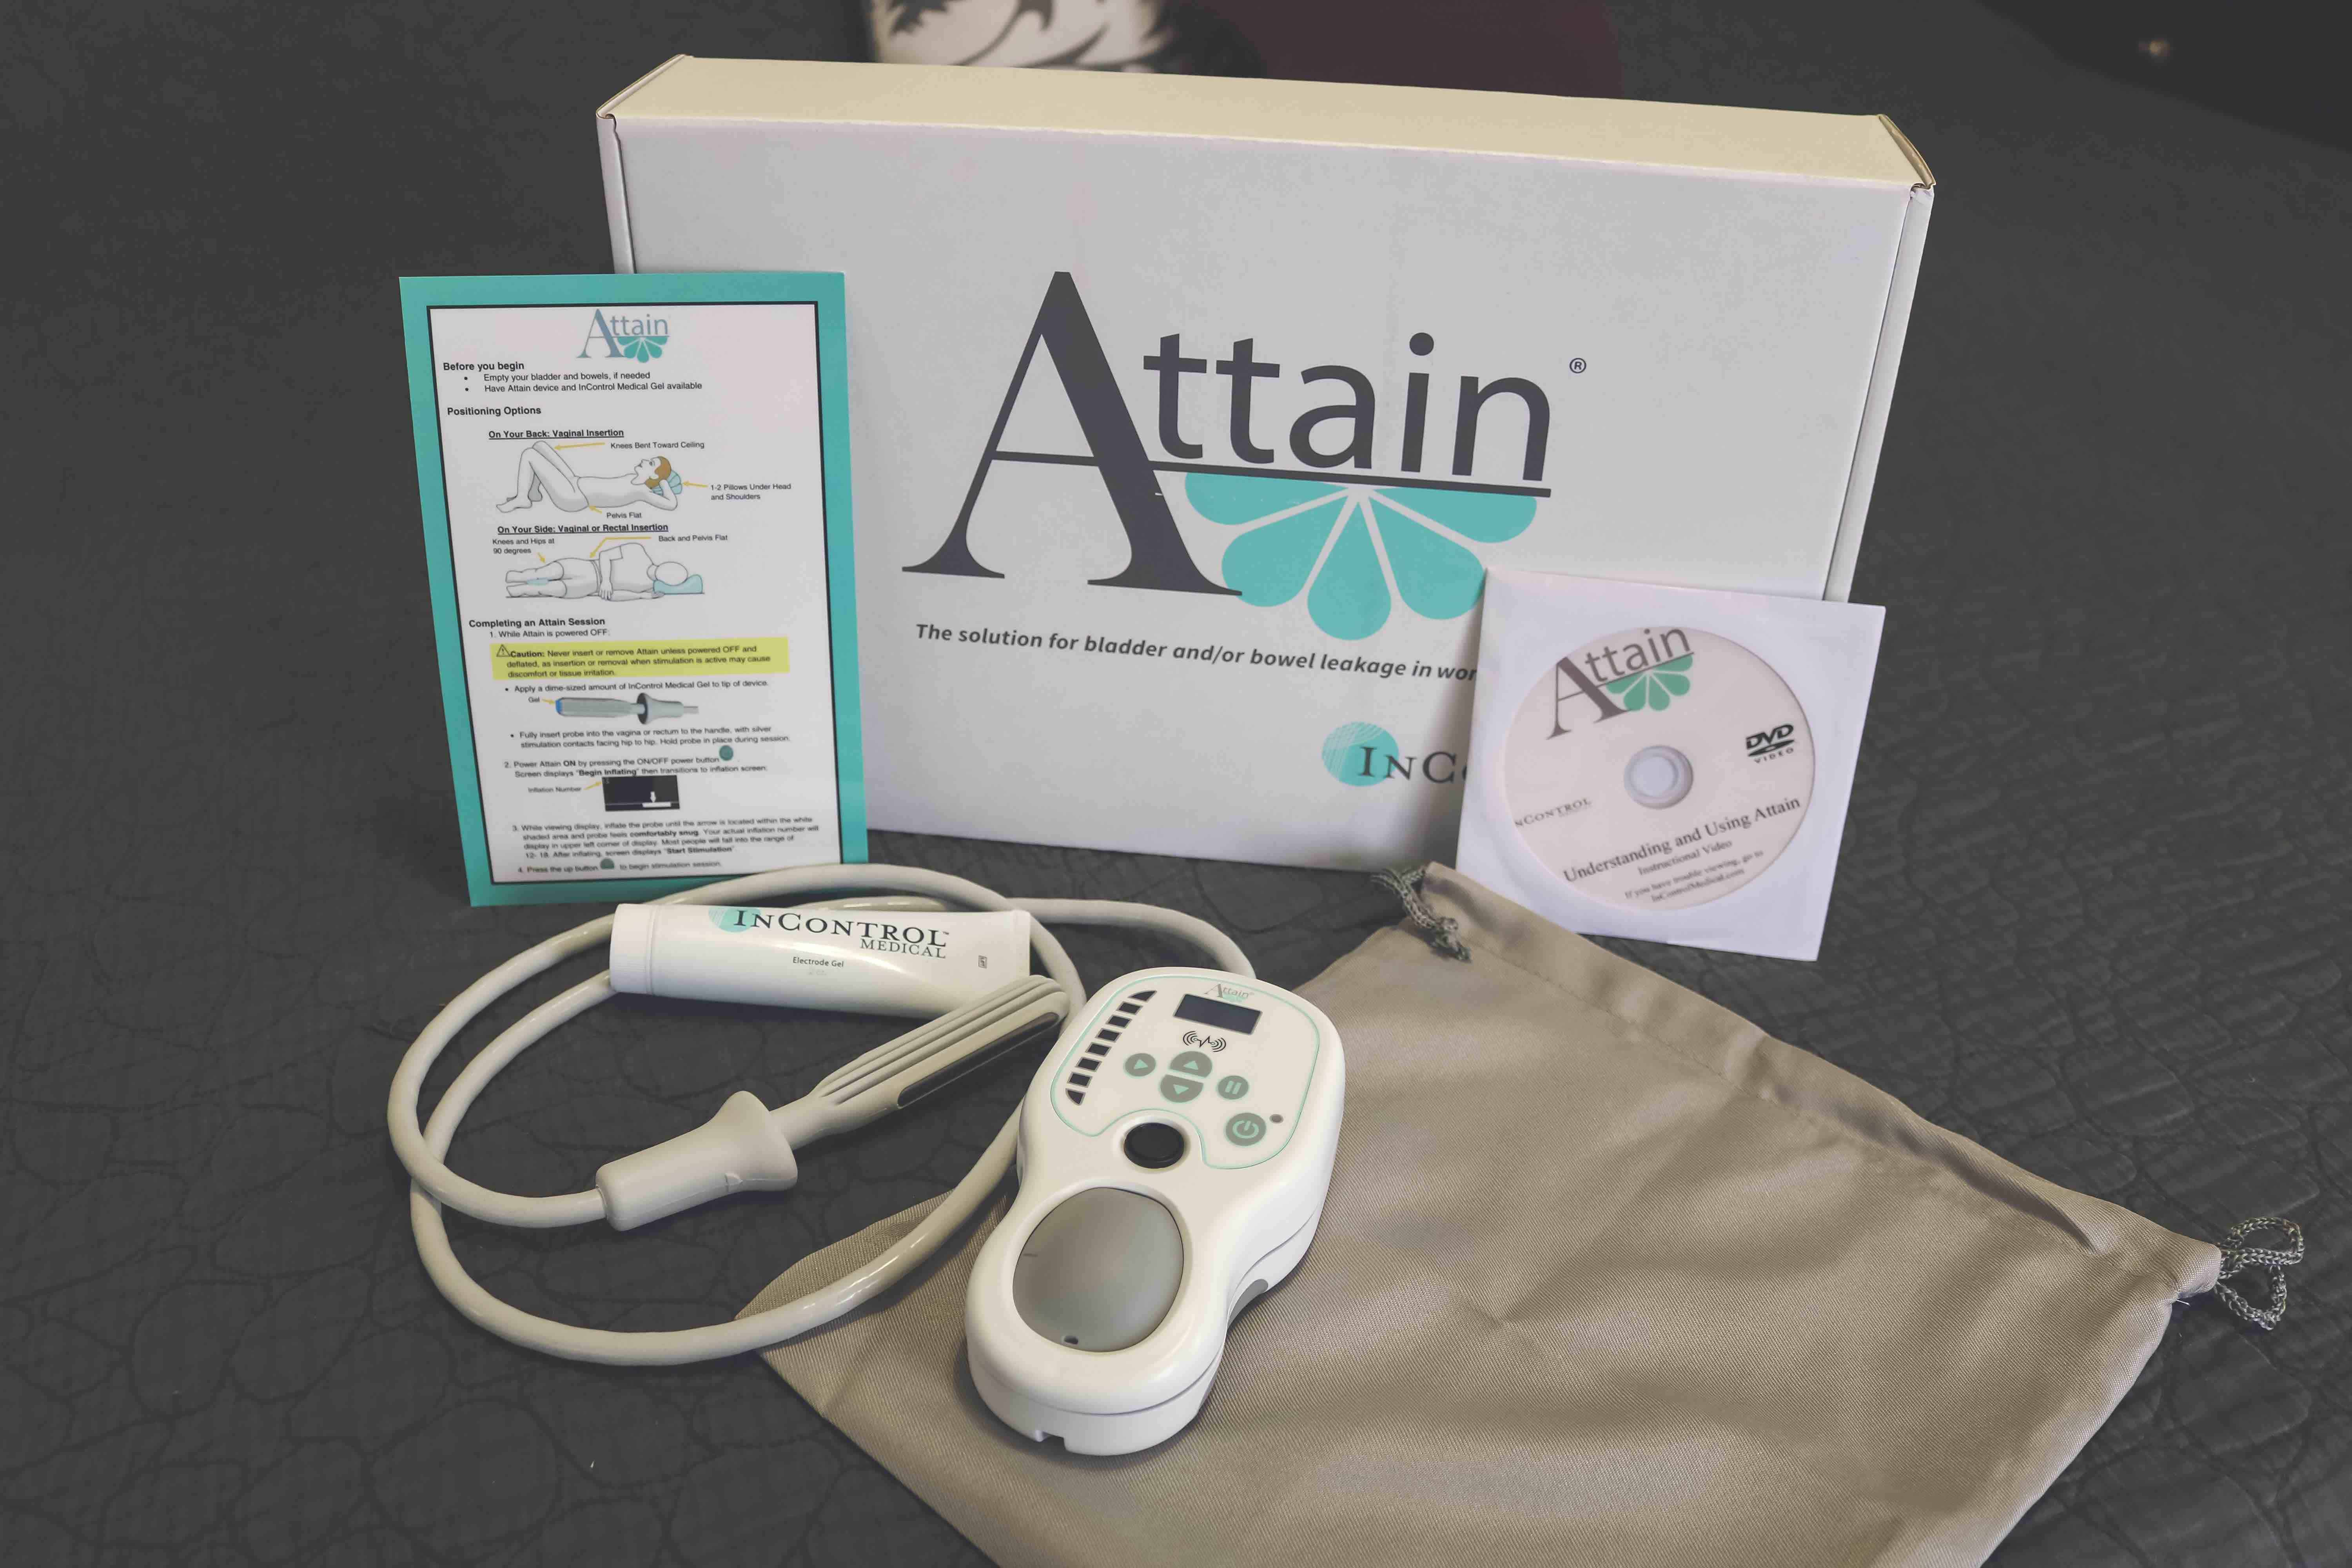 Attain Open Box